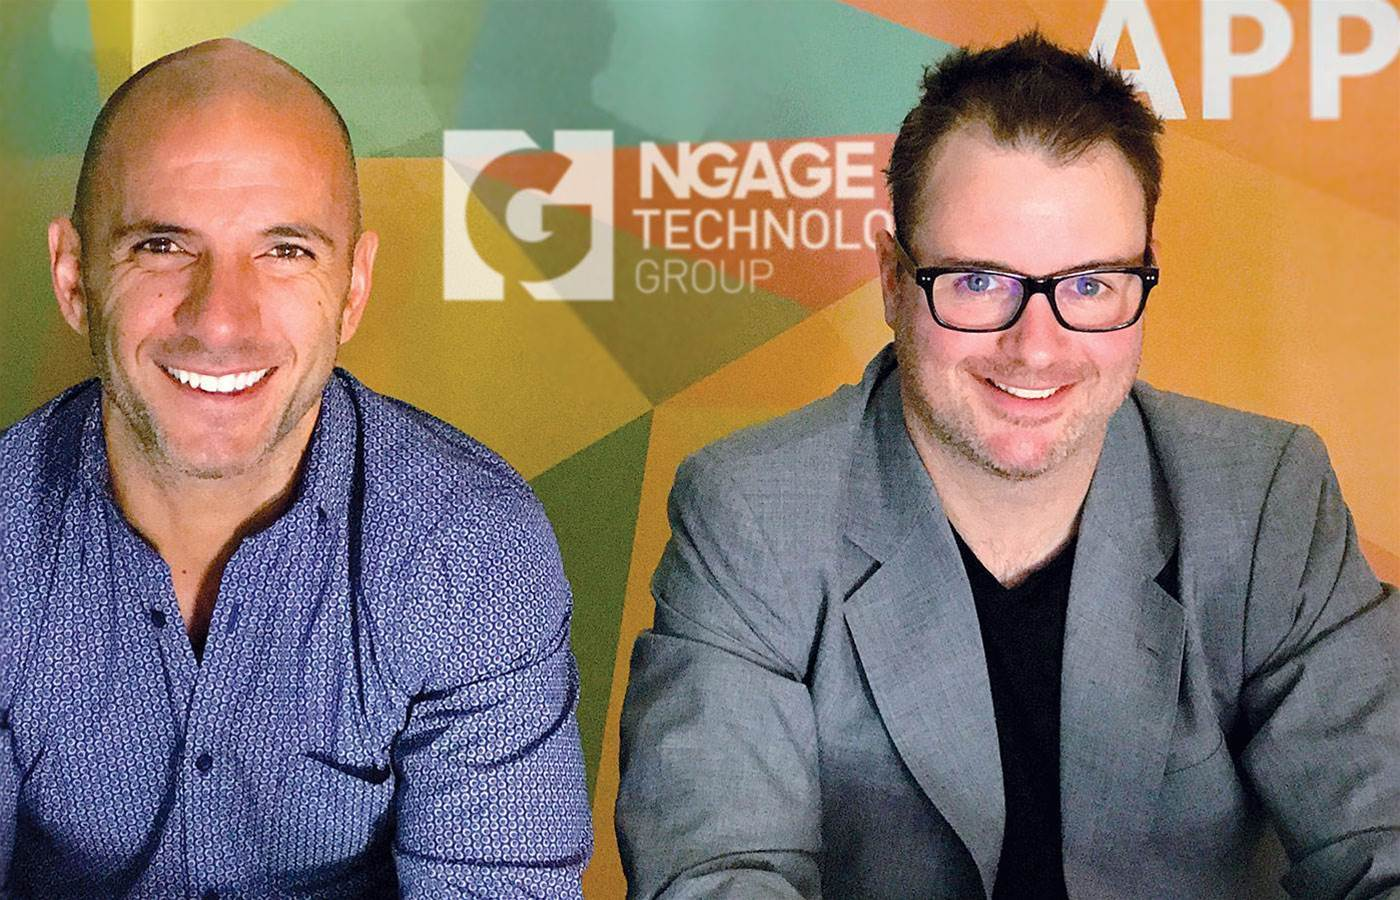 NGage Technology co-founder Jarrod Bloomfield exits as Cirrus Networks executive